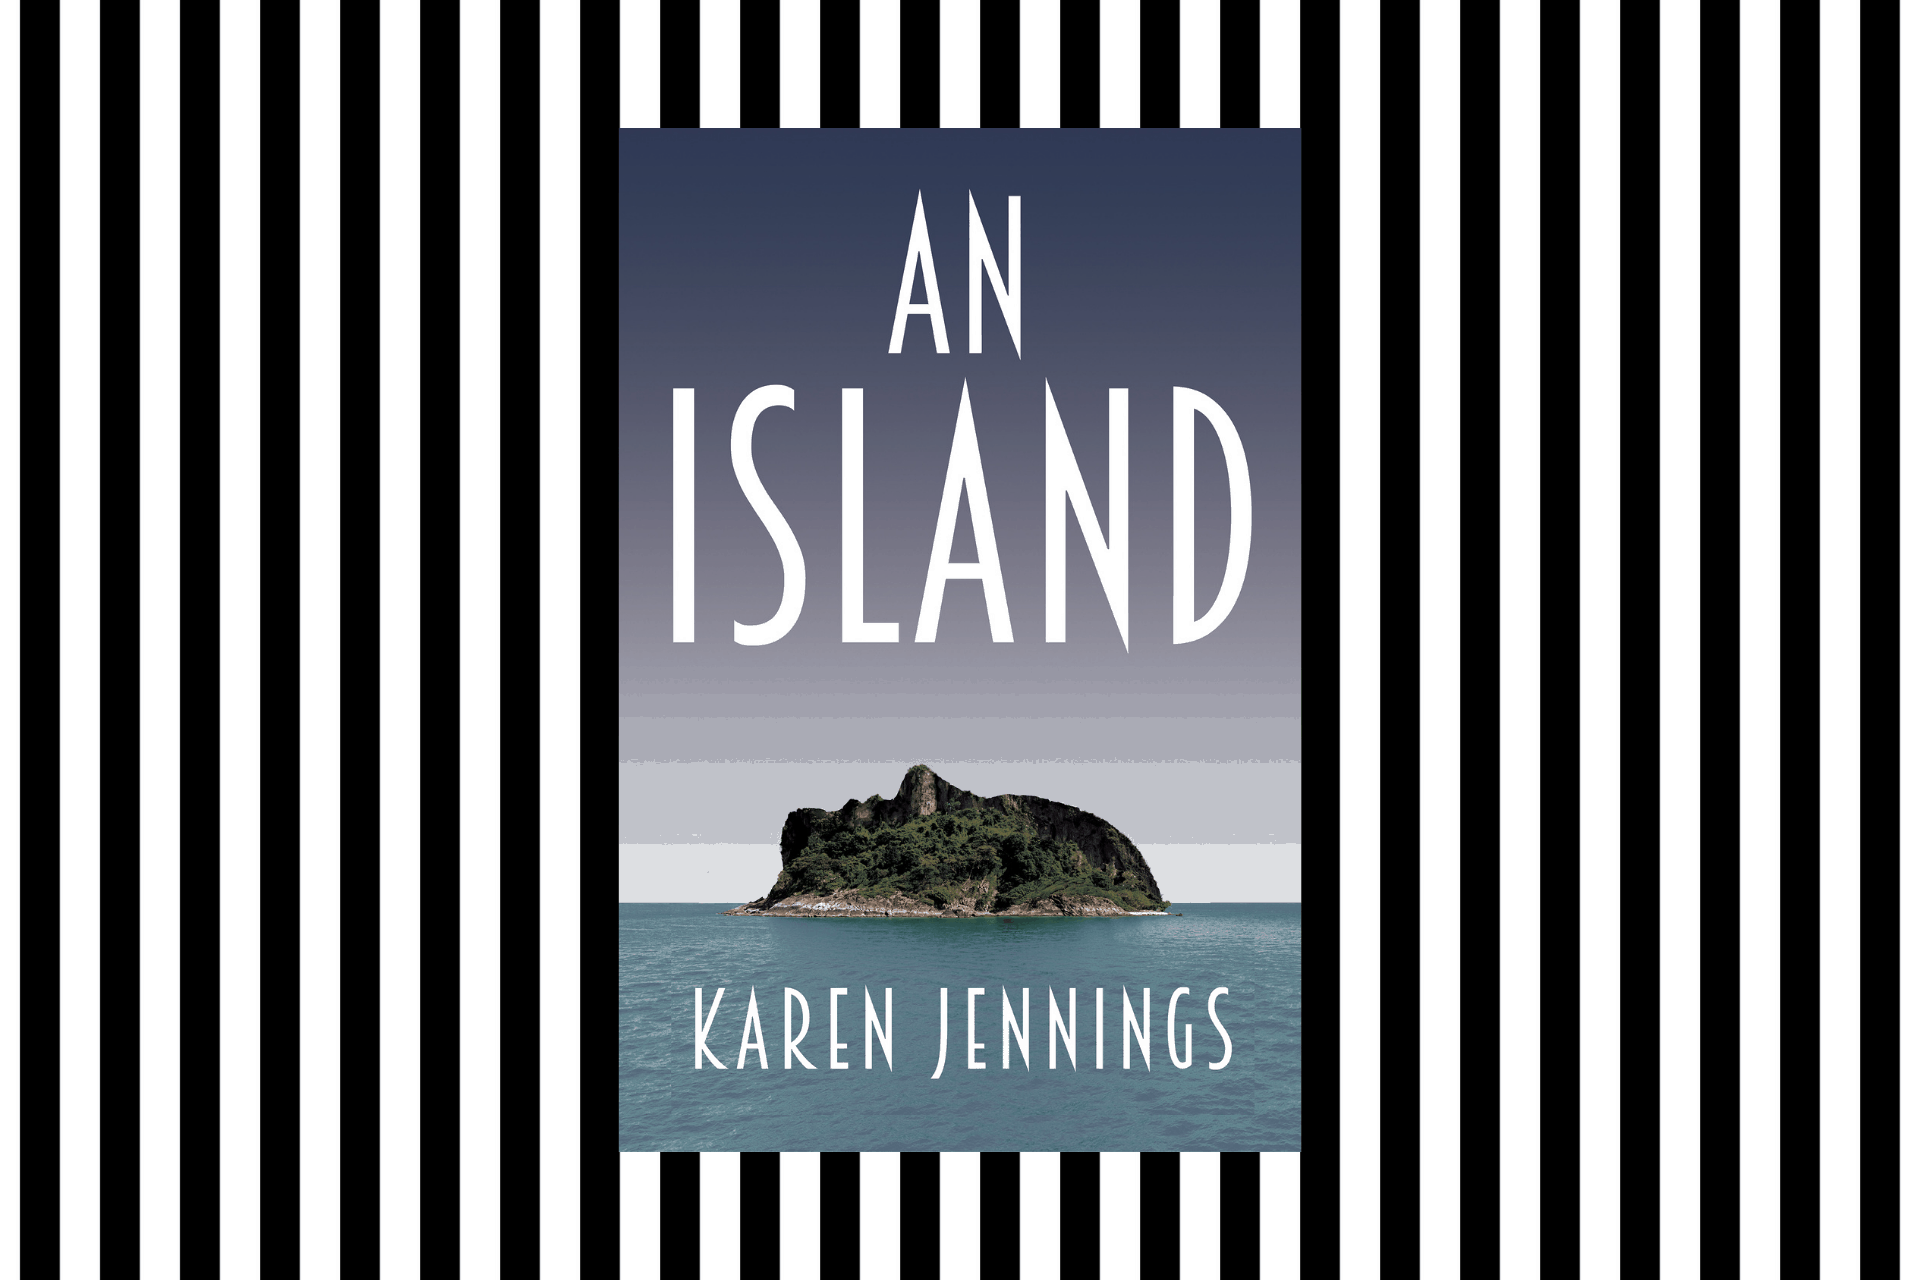 The cover of An Island by Karen Jennings